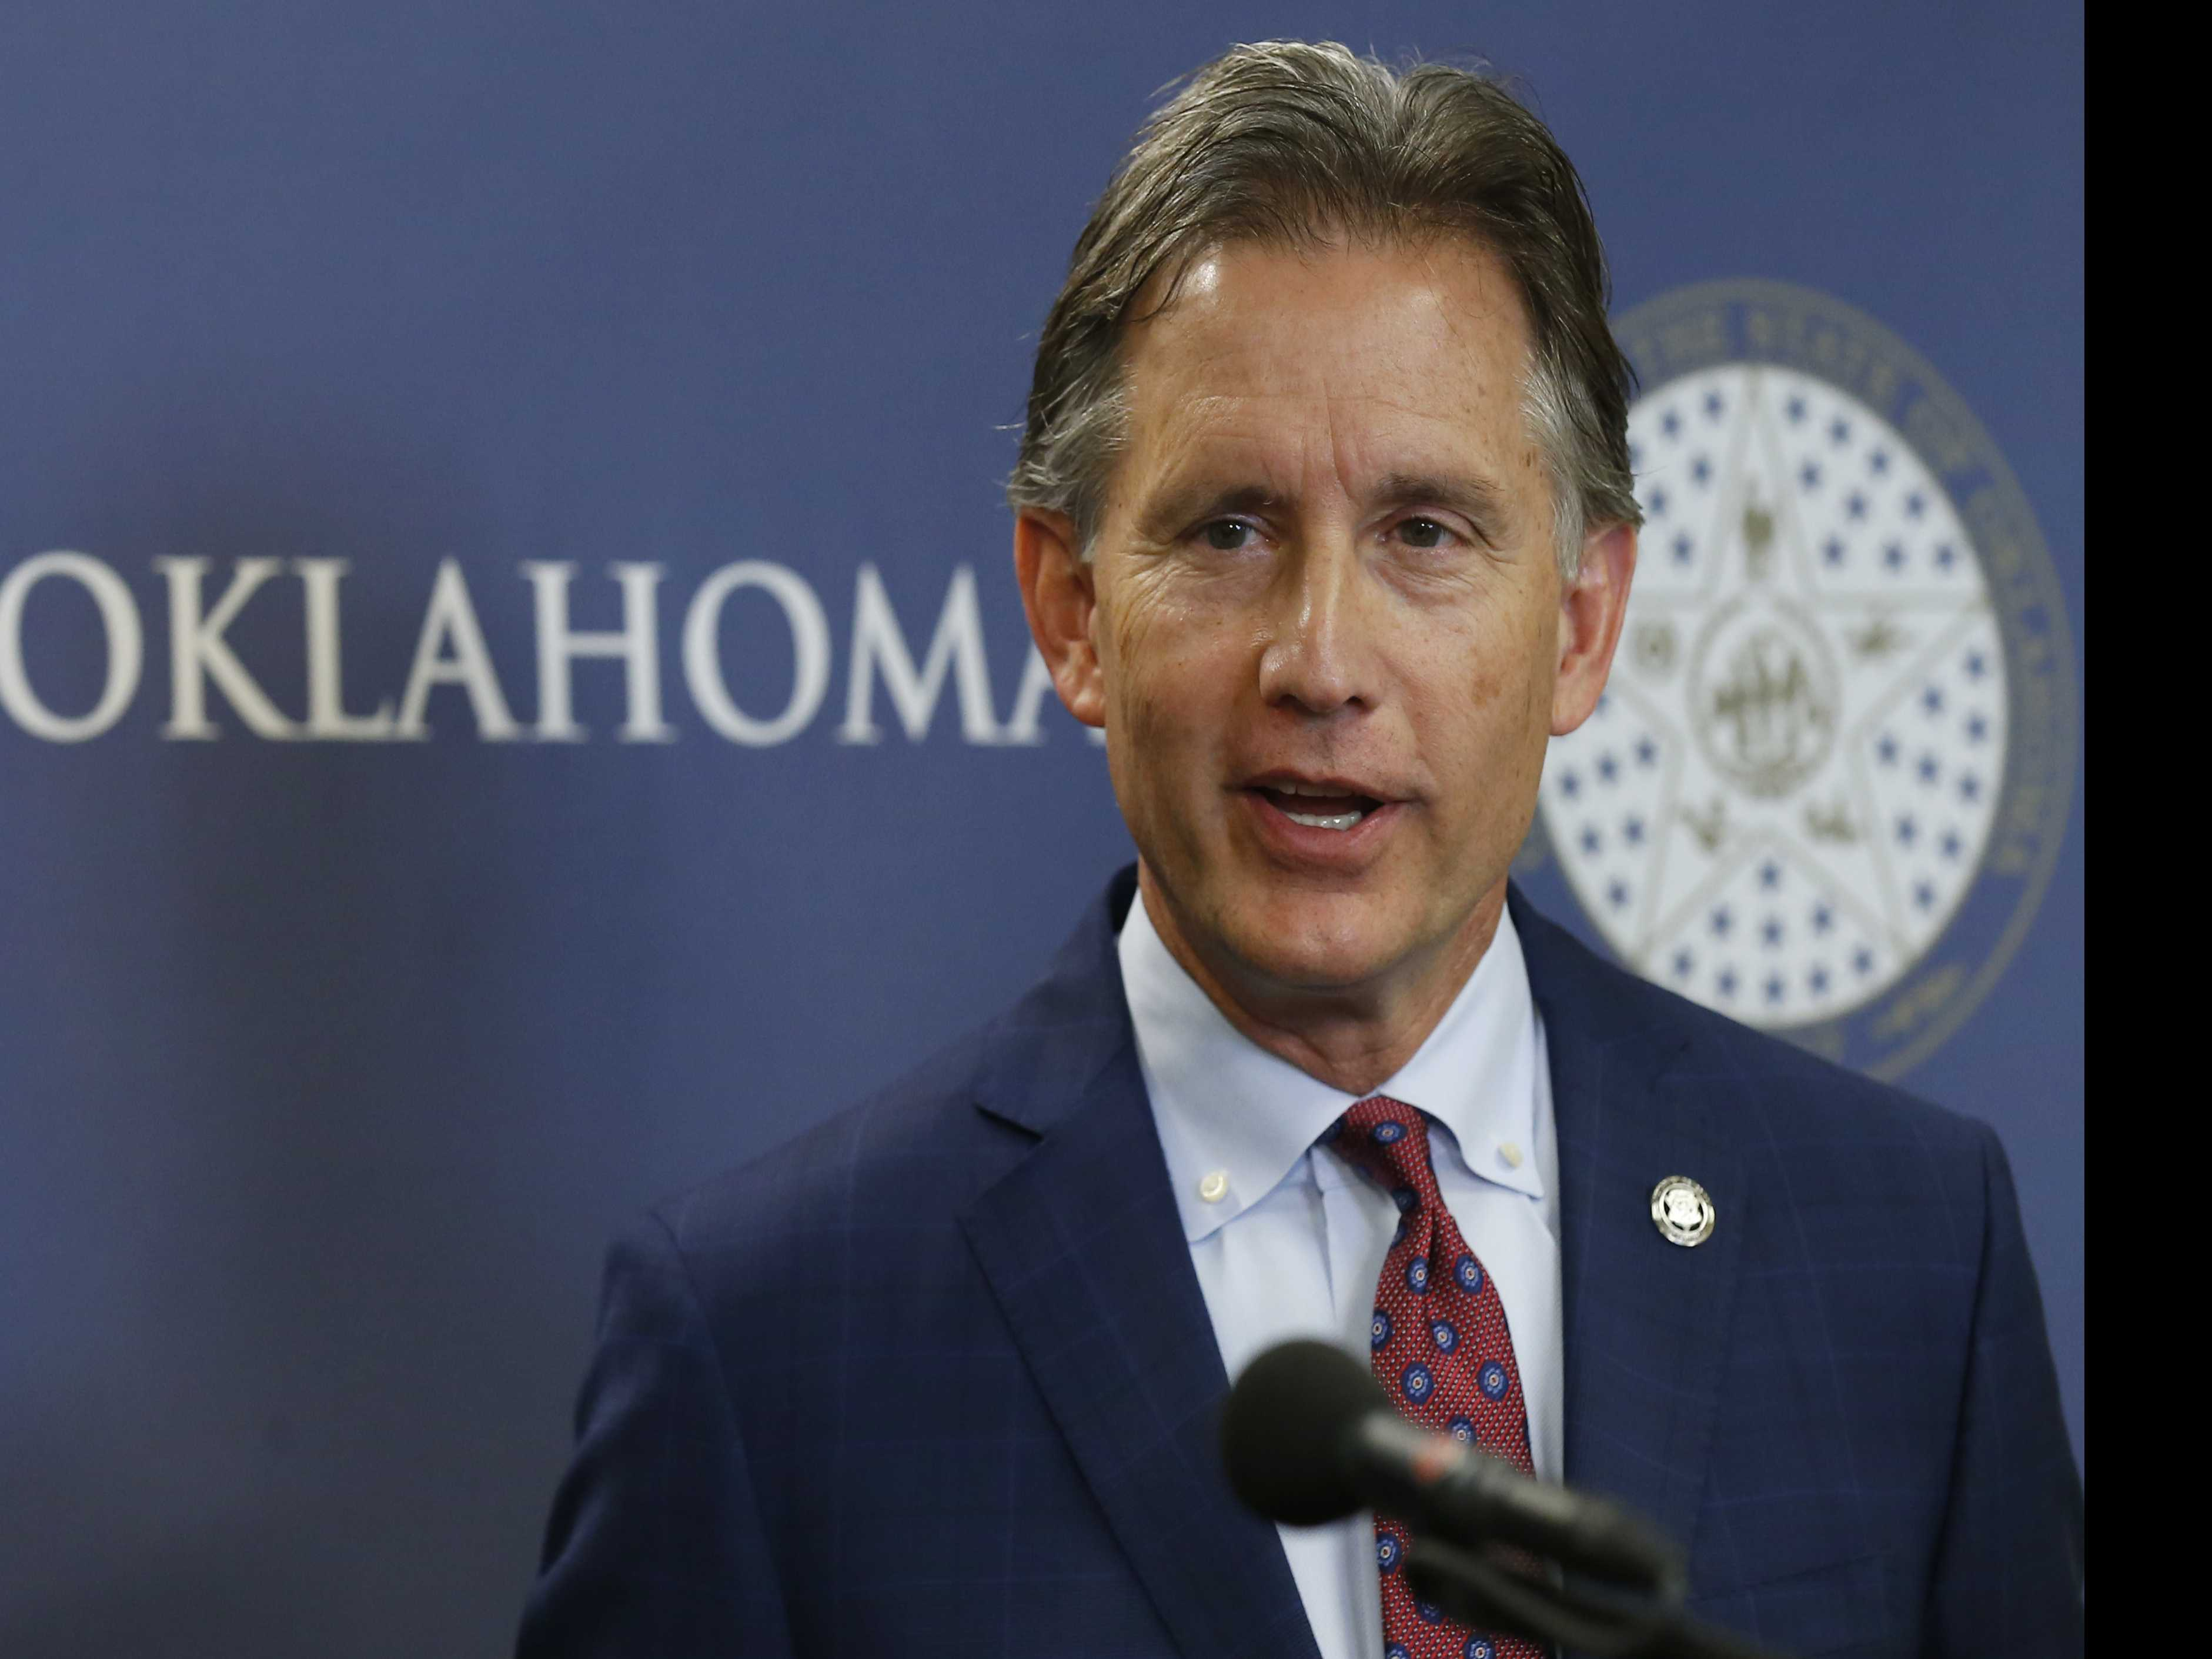 Attorney General: Oklahoma Board Went Too Far with Pot Rules